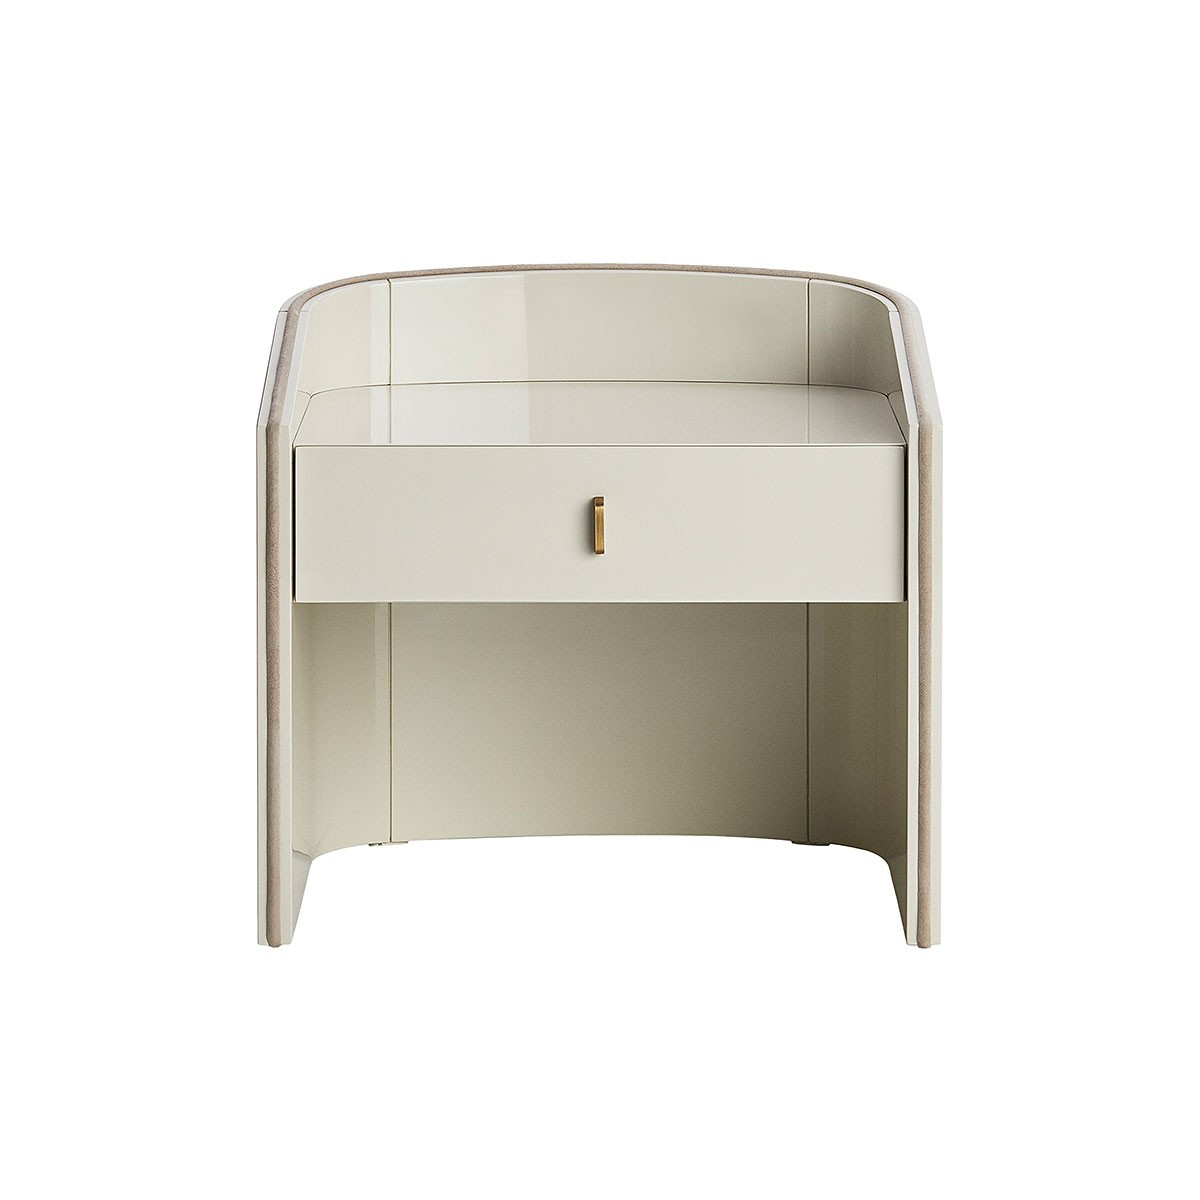 The Aurora Bedside Table